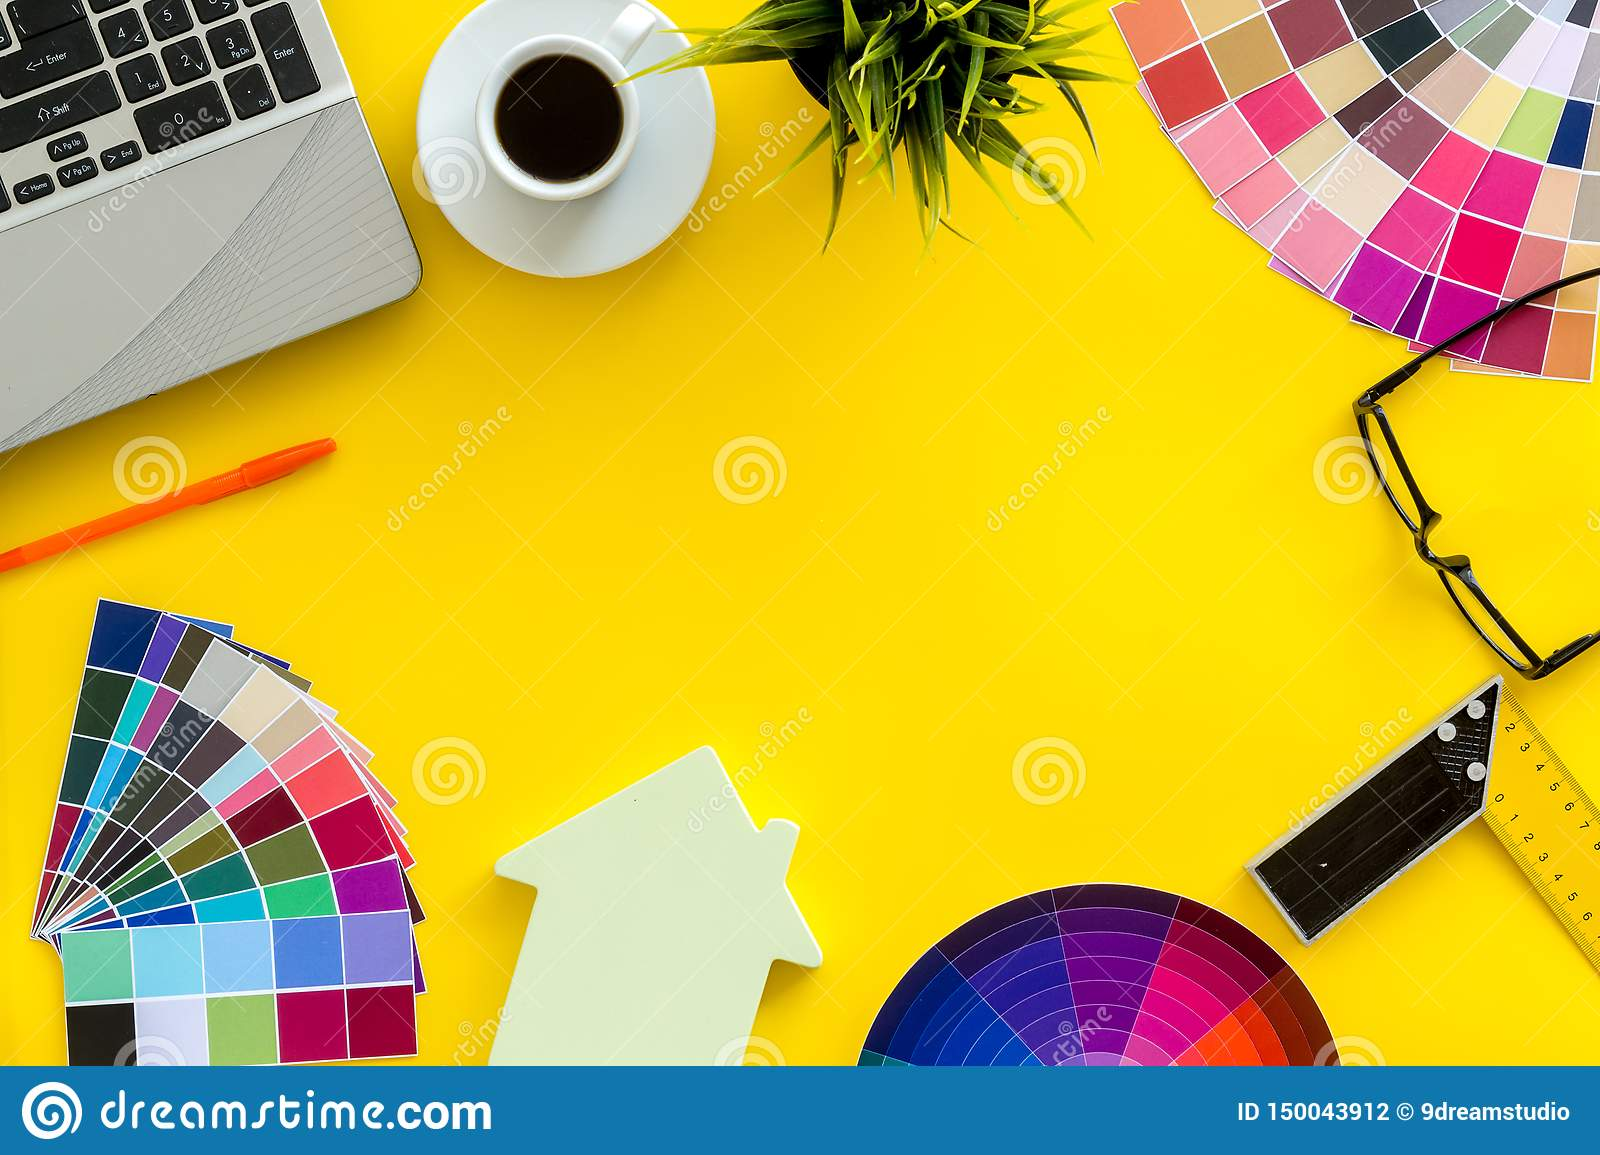 Pallet, laptop, house figure, coffee and tools for architect work on white desk background top view copyspace frame